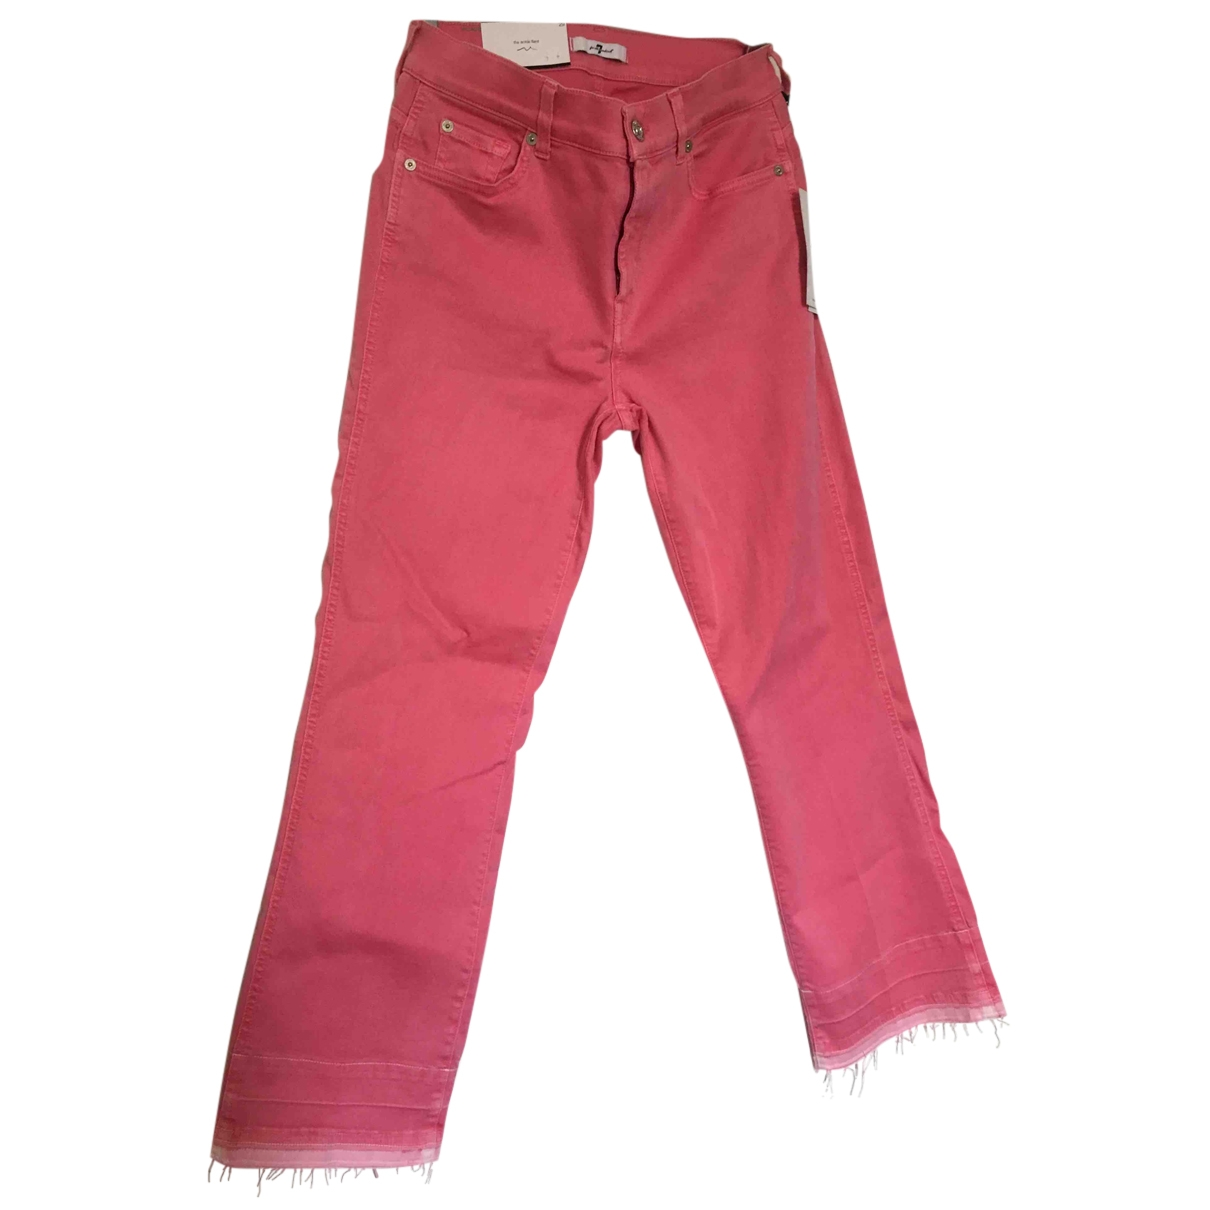 7 For All Mankind \N Pink Cotton - elasthane Jeans for Women 29 US